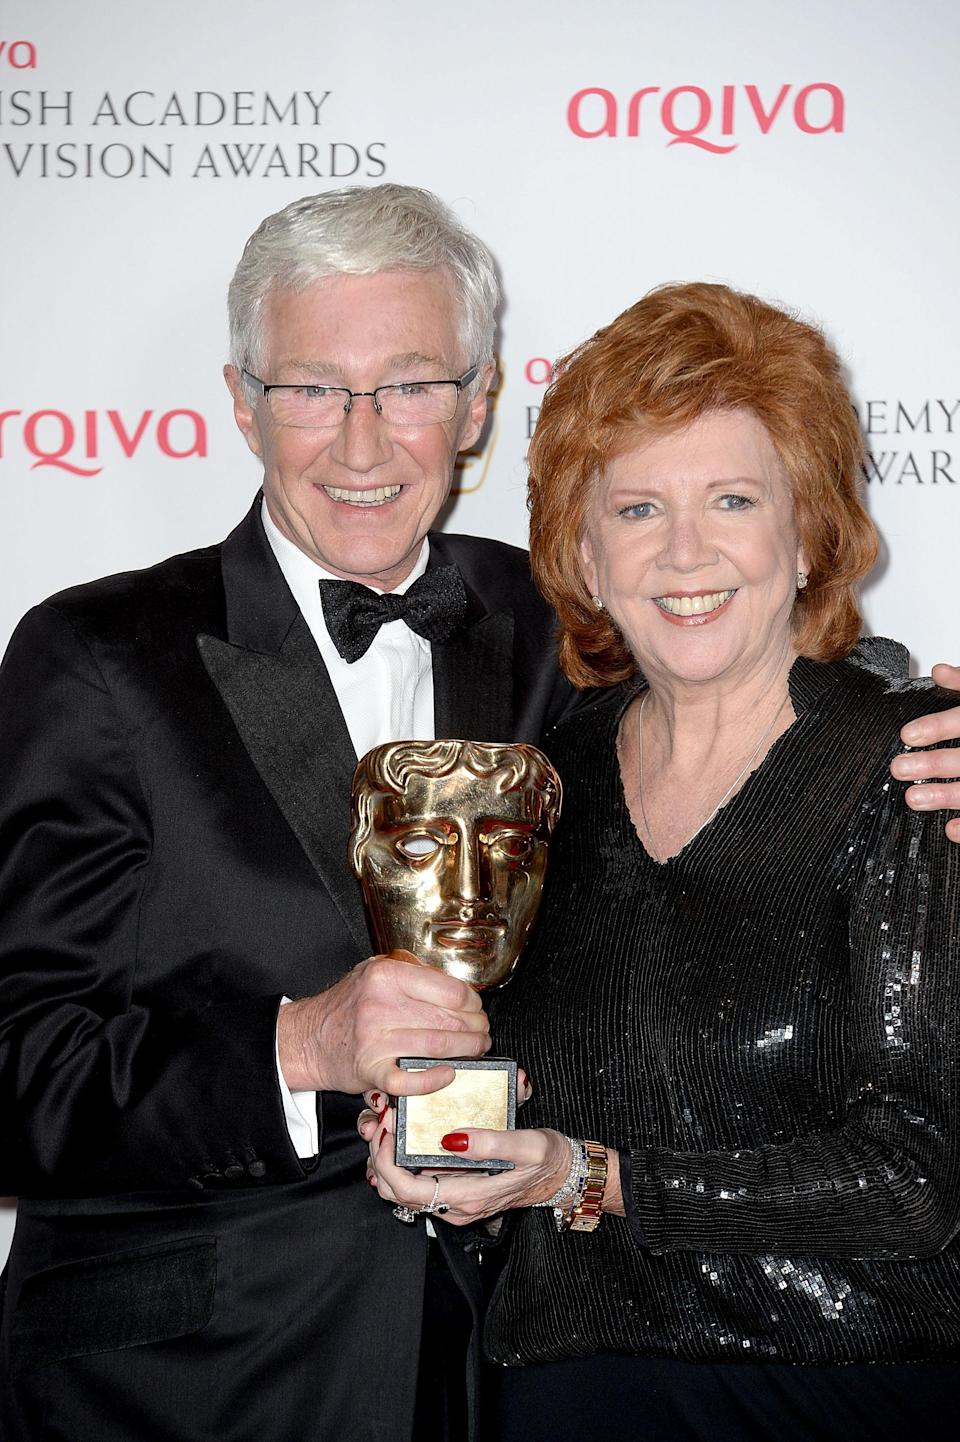 LONDON, ENGLAND – MAY 18: Cilla Black accepts the Bafta Special Award for her service to entertainment with Paul O'Grady at the Arqiva British Academy Television Awards at Theatre Royal on May 18, 2014 in London, England. (Photo by Dave Hogan/Getty Images)